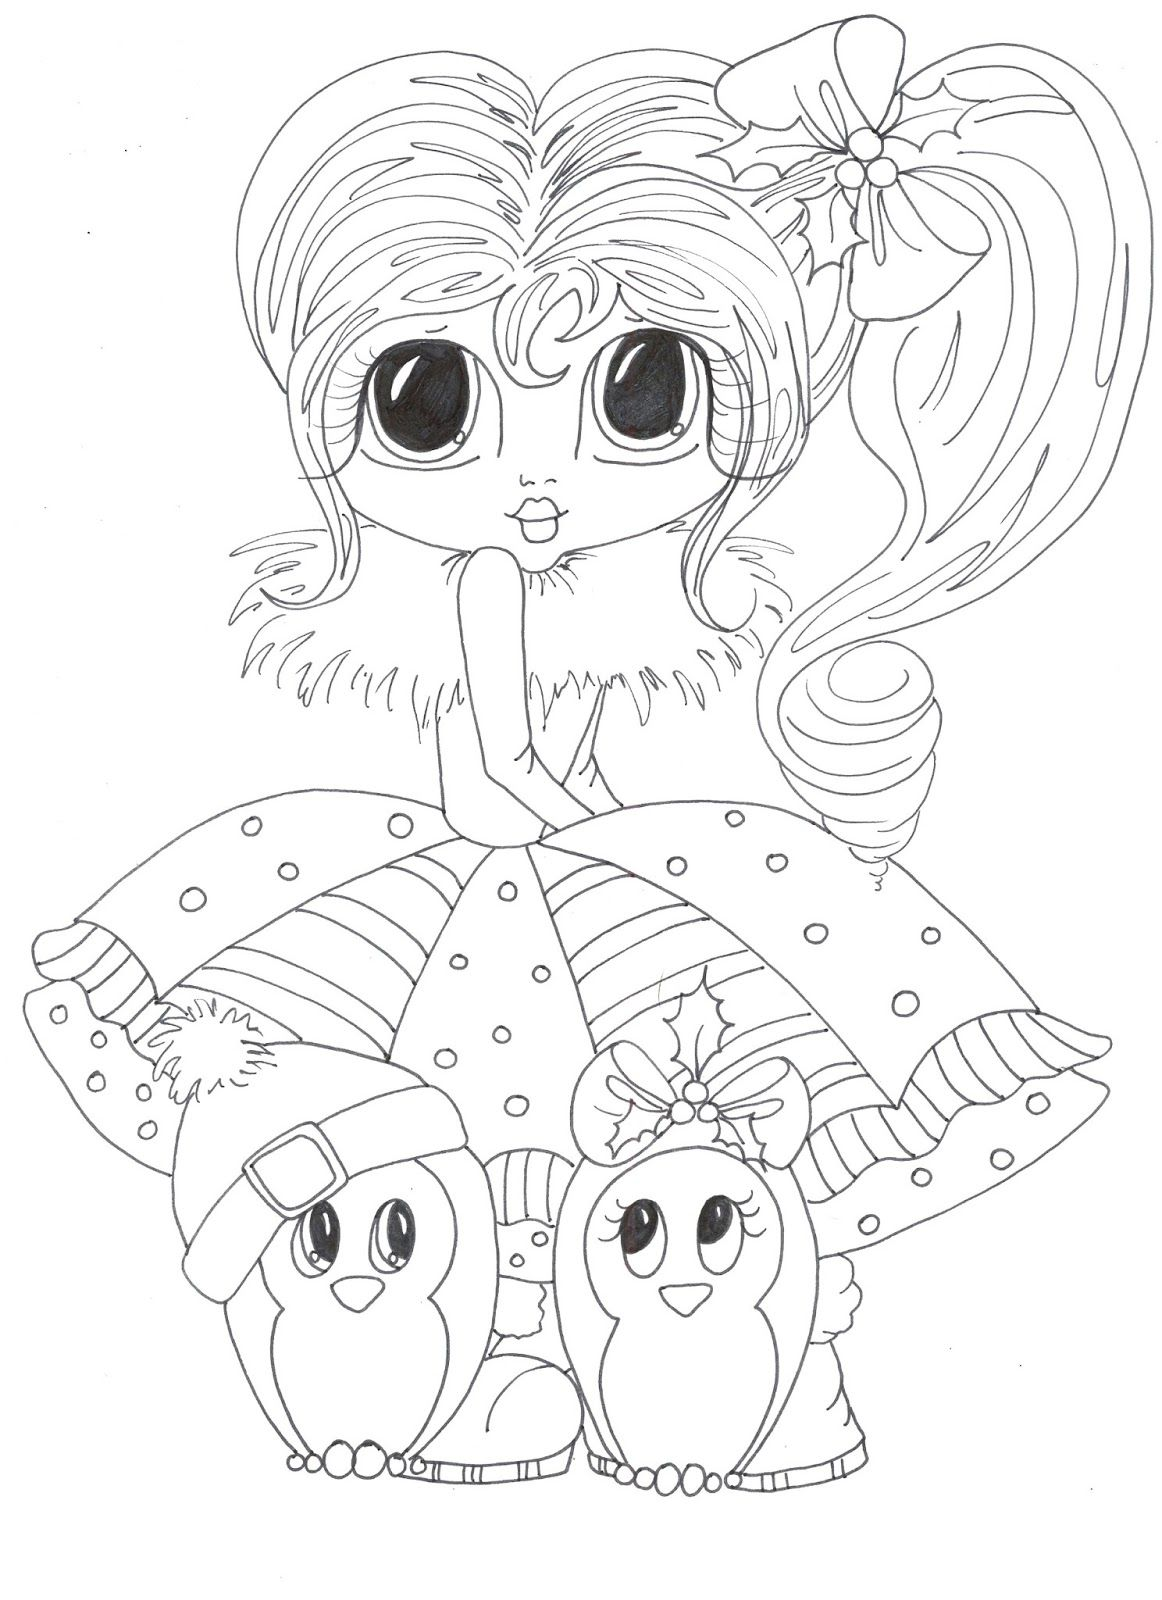 Pin by jacqui shepherd on kids colouring pinterest kids colouring